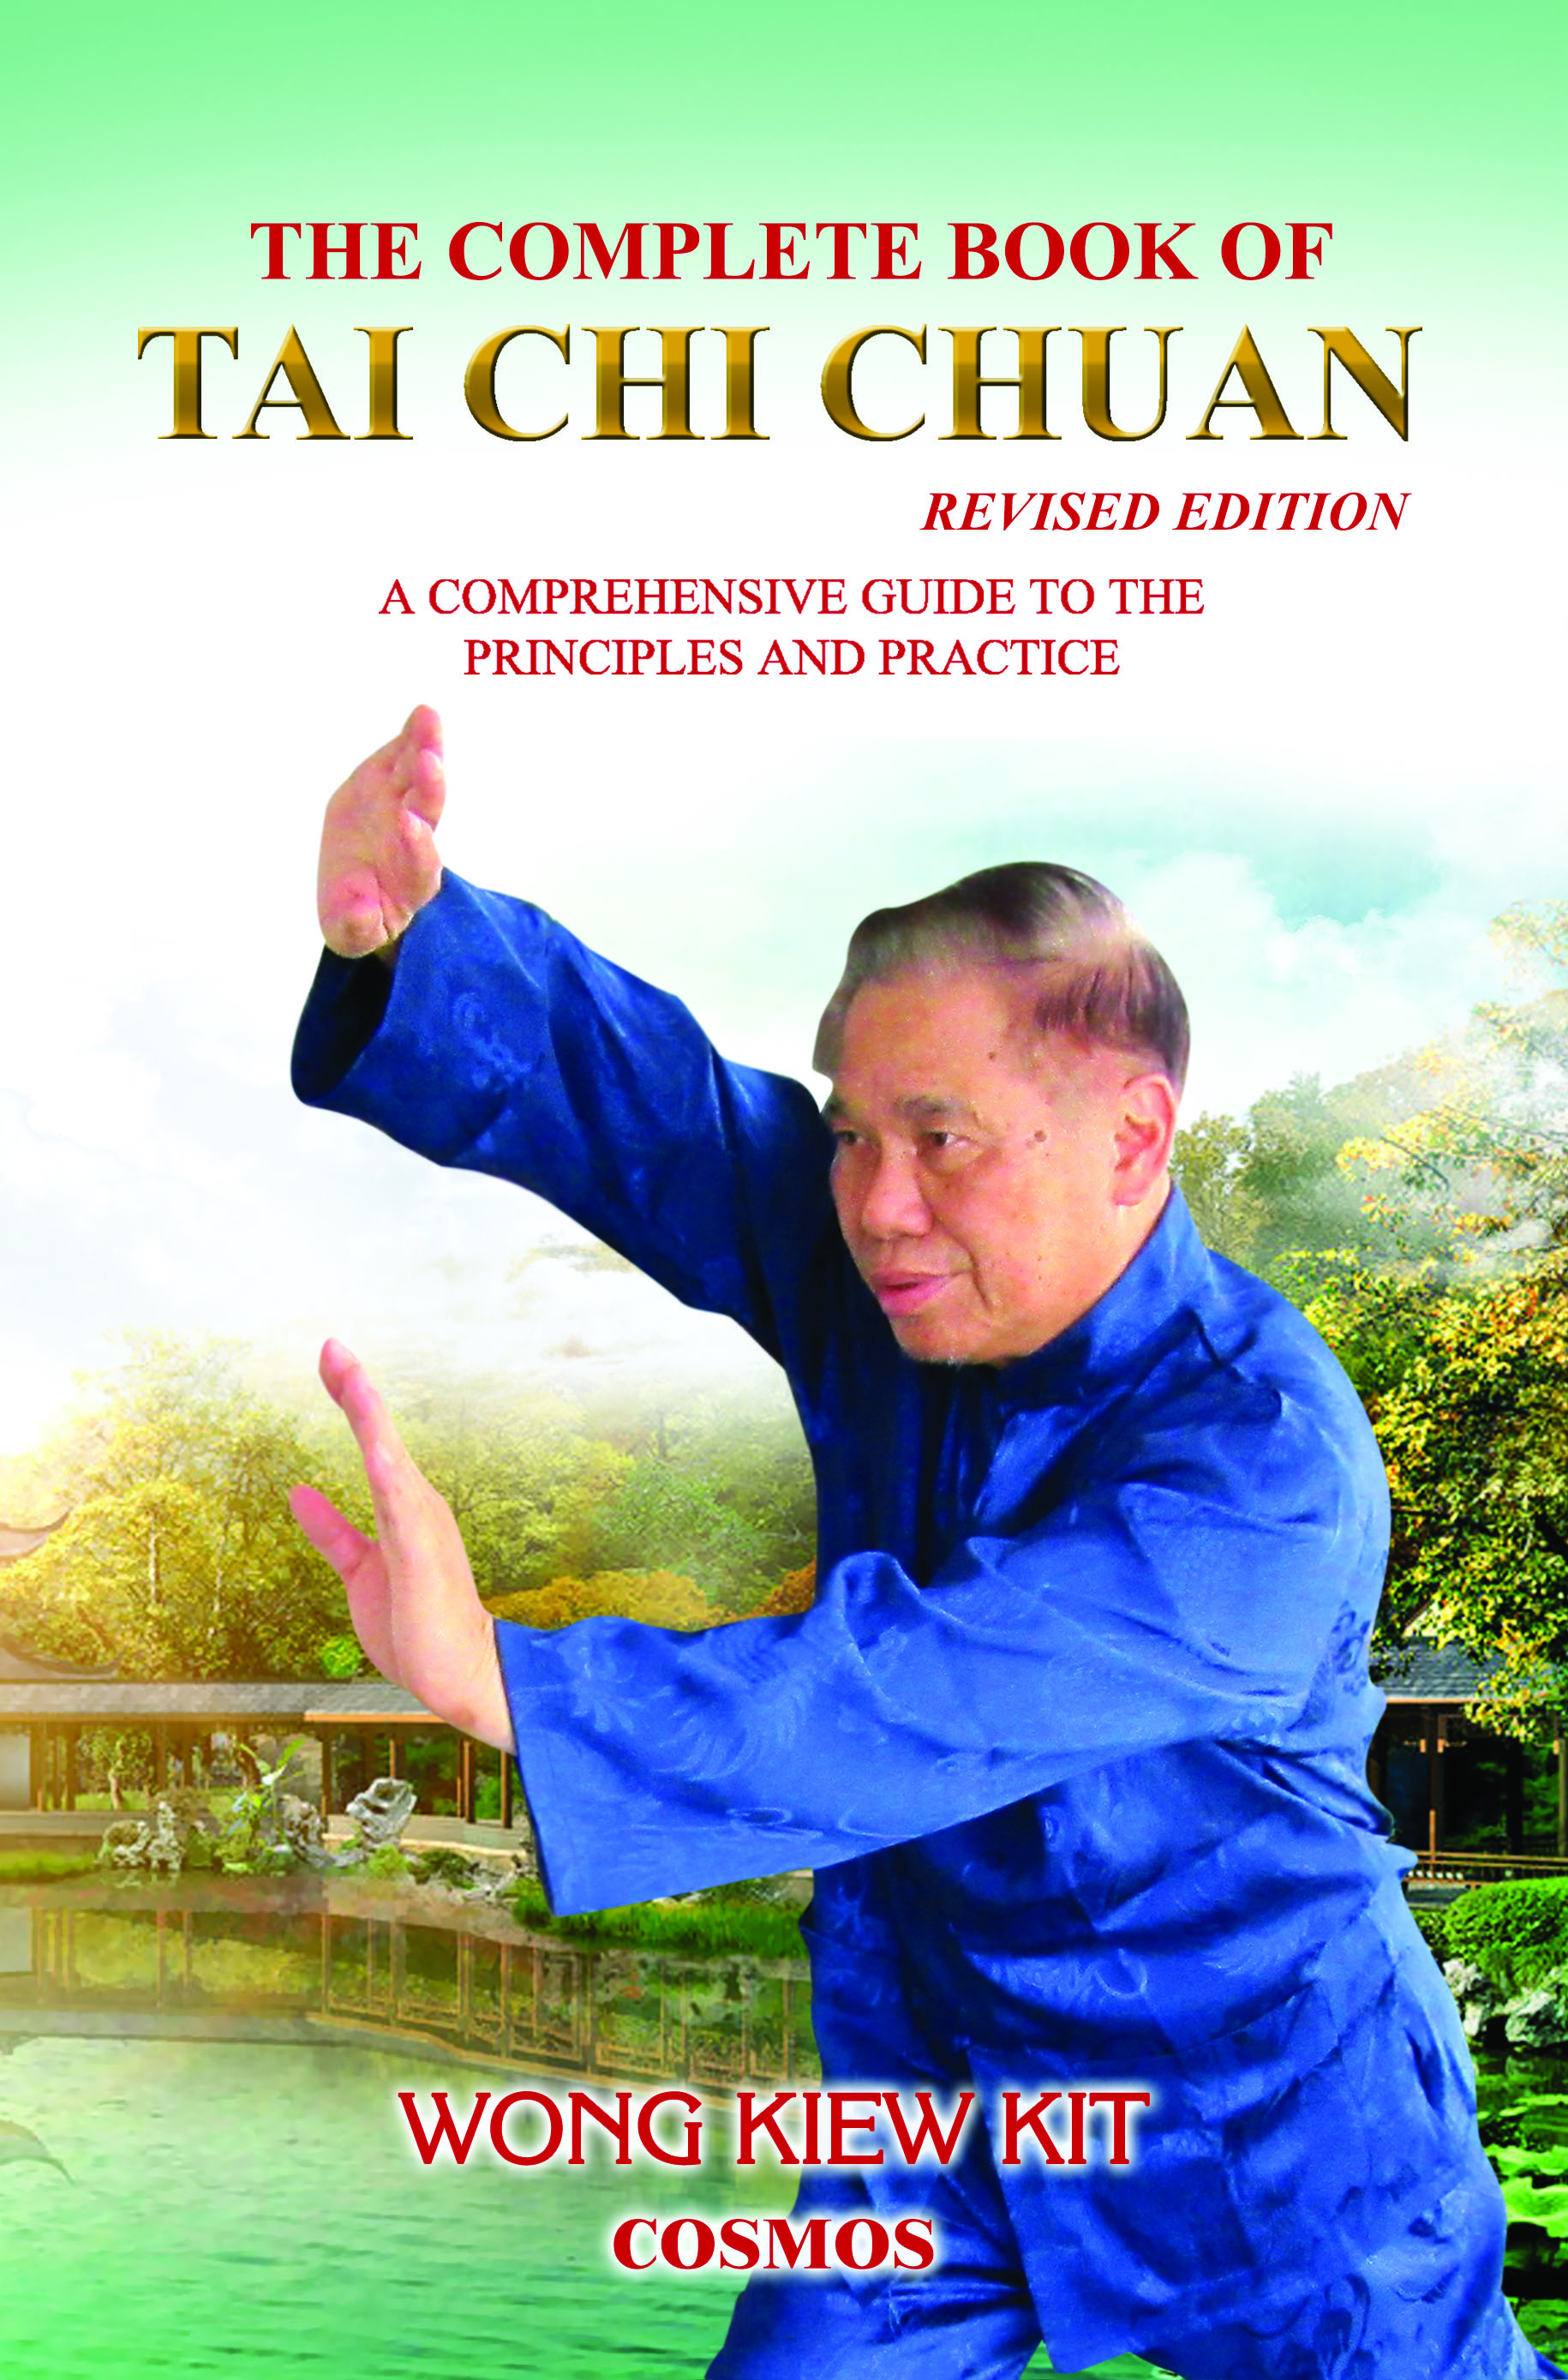 The Complete Book of Tai Chi Chuan (Revised Edition)